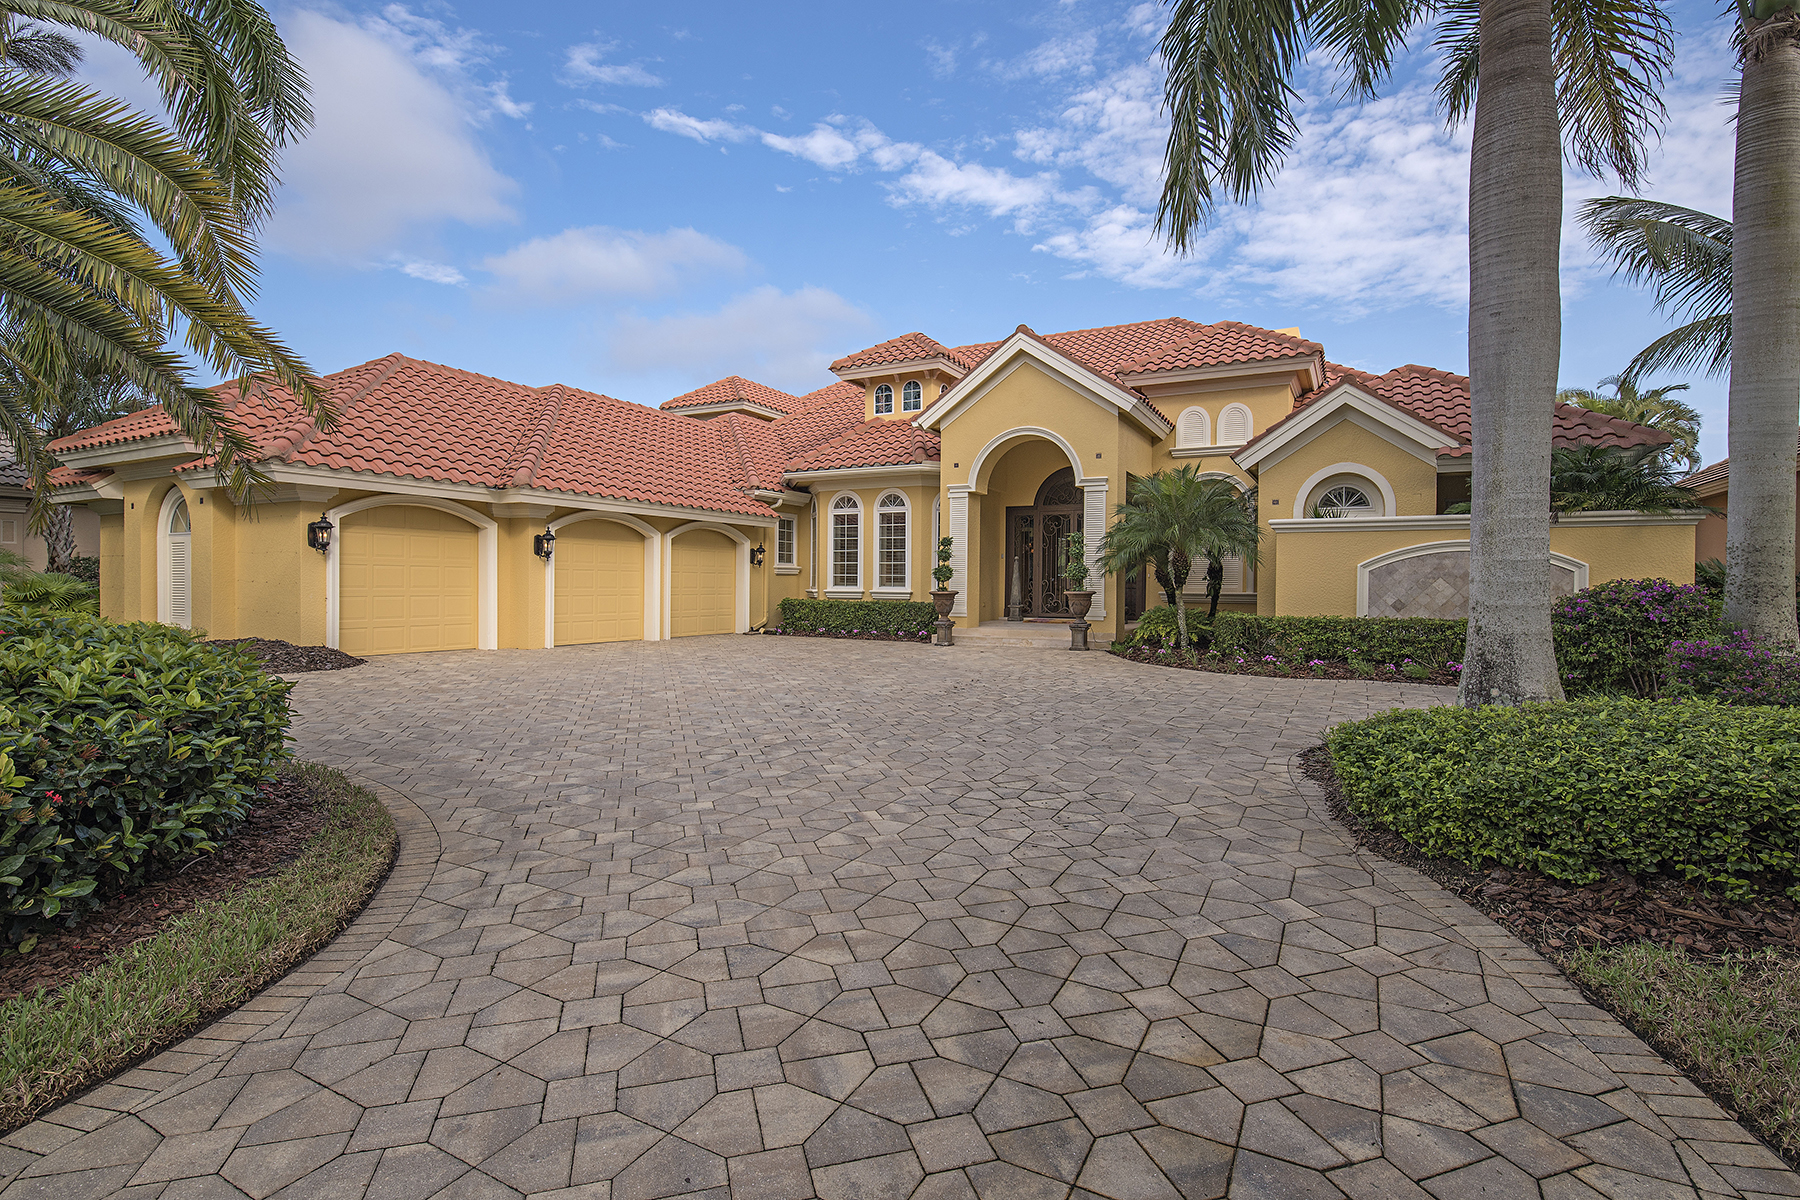 Casa Unifamiliar por un Venta en WILLOW WALK 9166 Willow Walk Estero, Florida, 34135 Estados Unidos